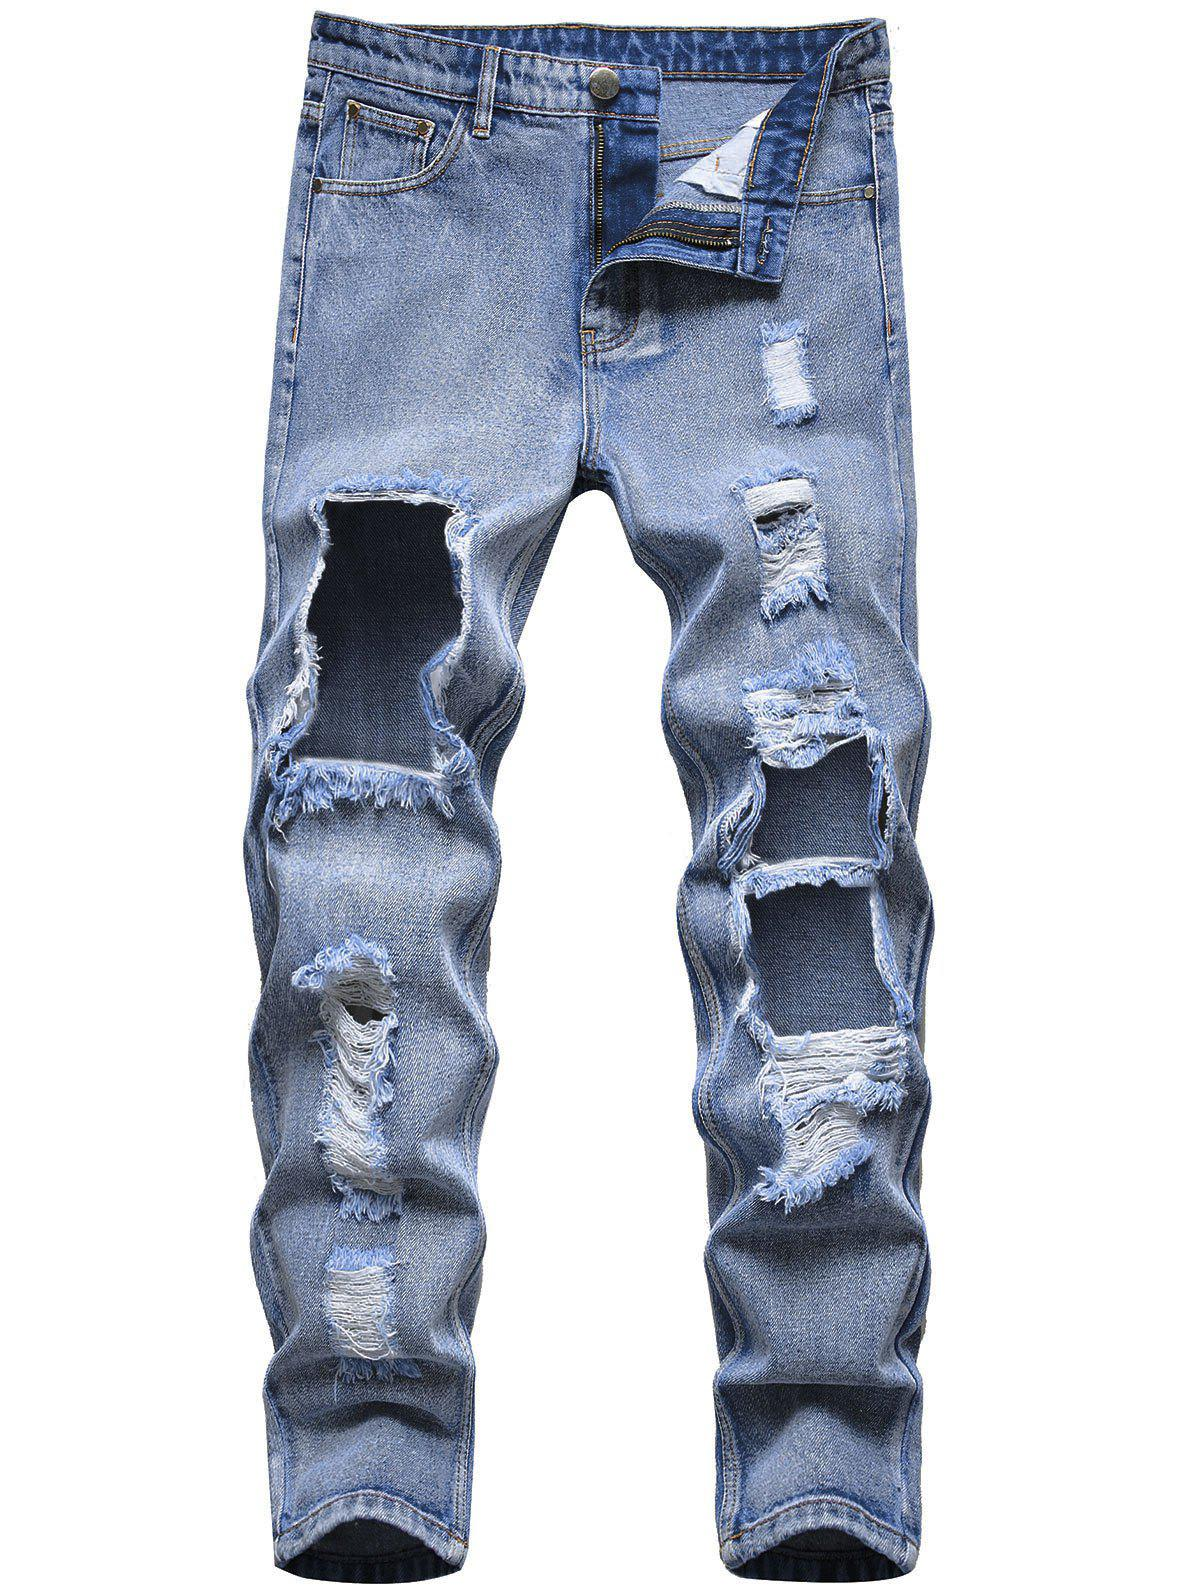 Cut Out Destroyed Tapered Jeans - LIGHT BLUE 38